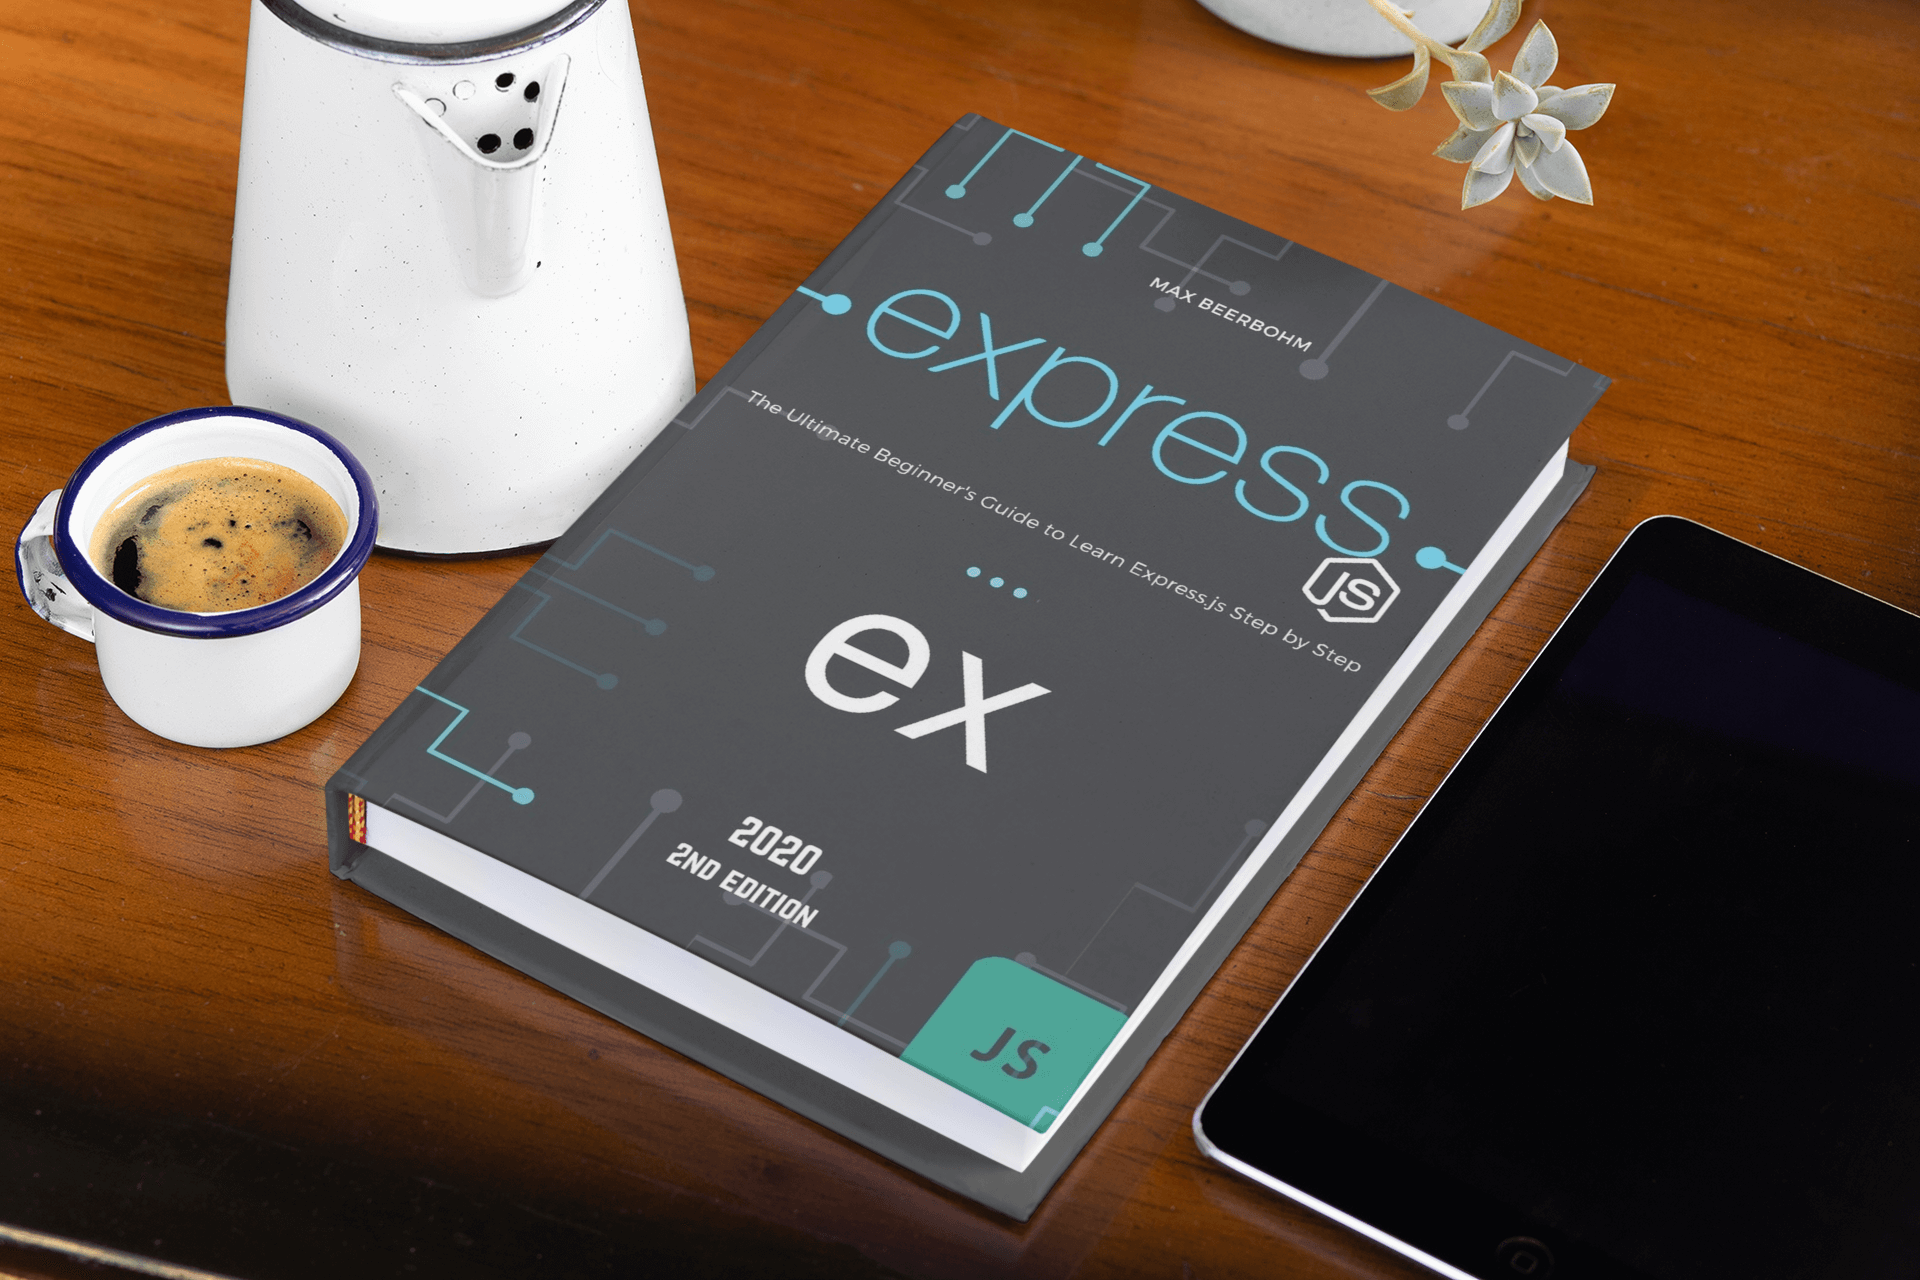 hardcover-mockup-of-Express-js-the-ultimate-beginners-guide-to-learn-expressjs-step-by-step